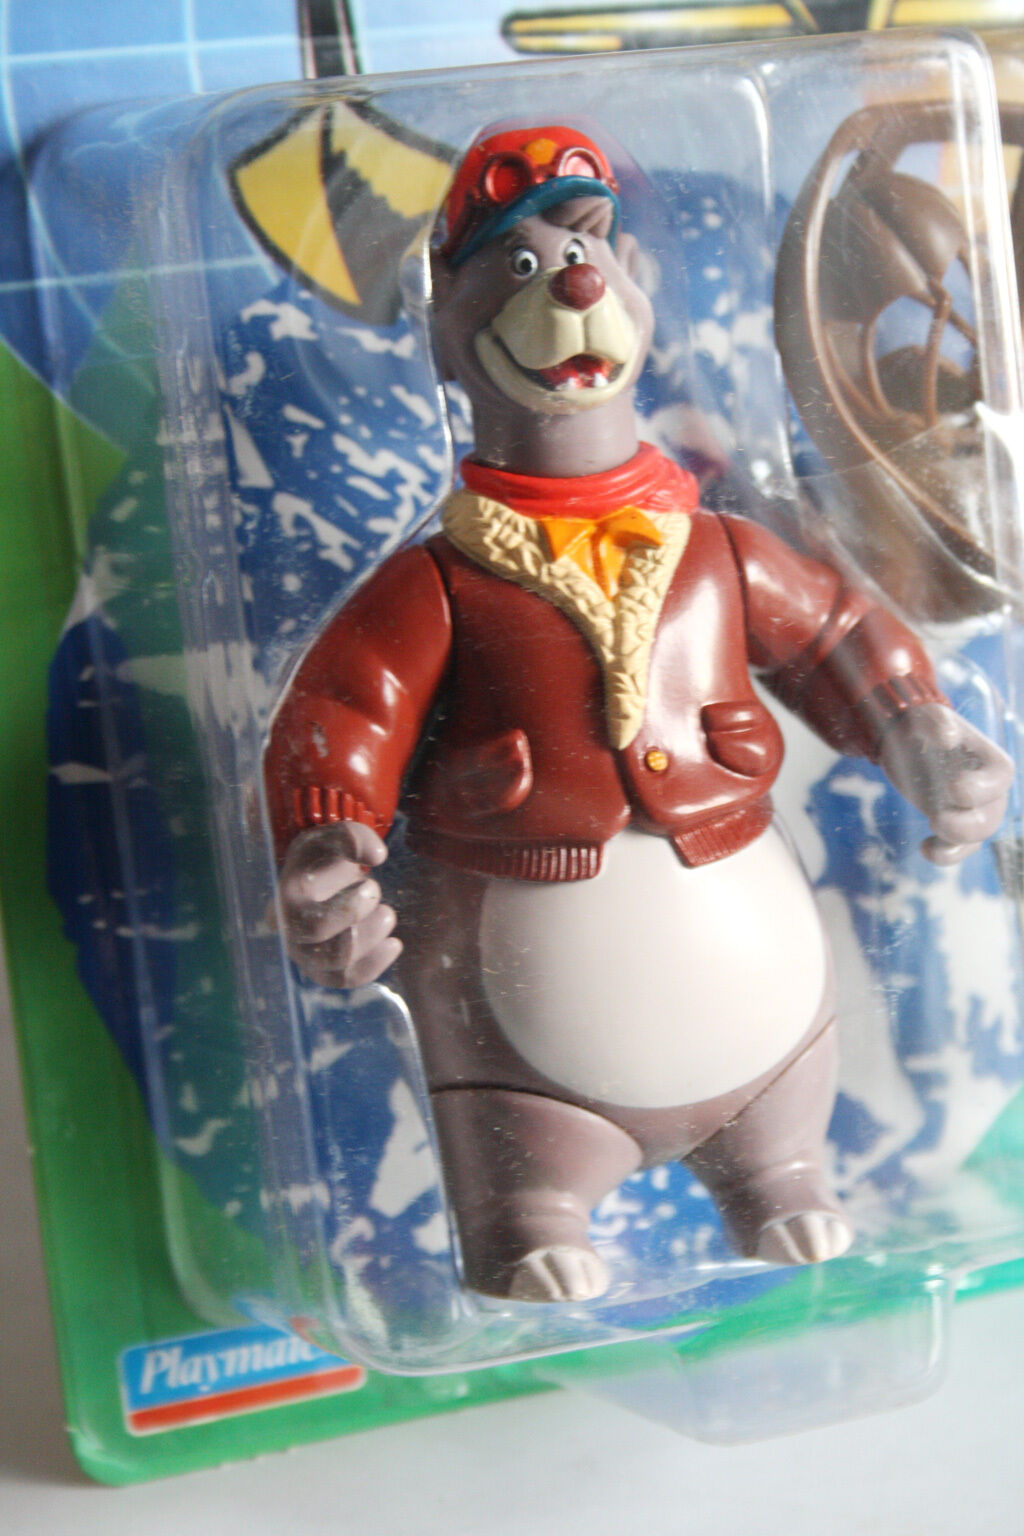 VERY RARE VINTAGE VINTAGE VINTAGE 1991 TALE SPIN BALOO FIGURE BANDAI PLAYMATES NEW SEALED MOSC   251403